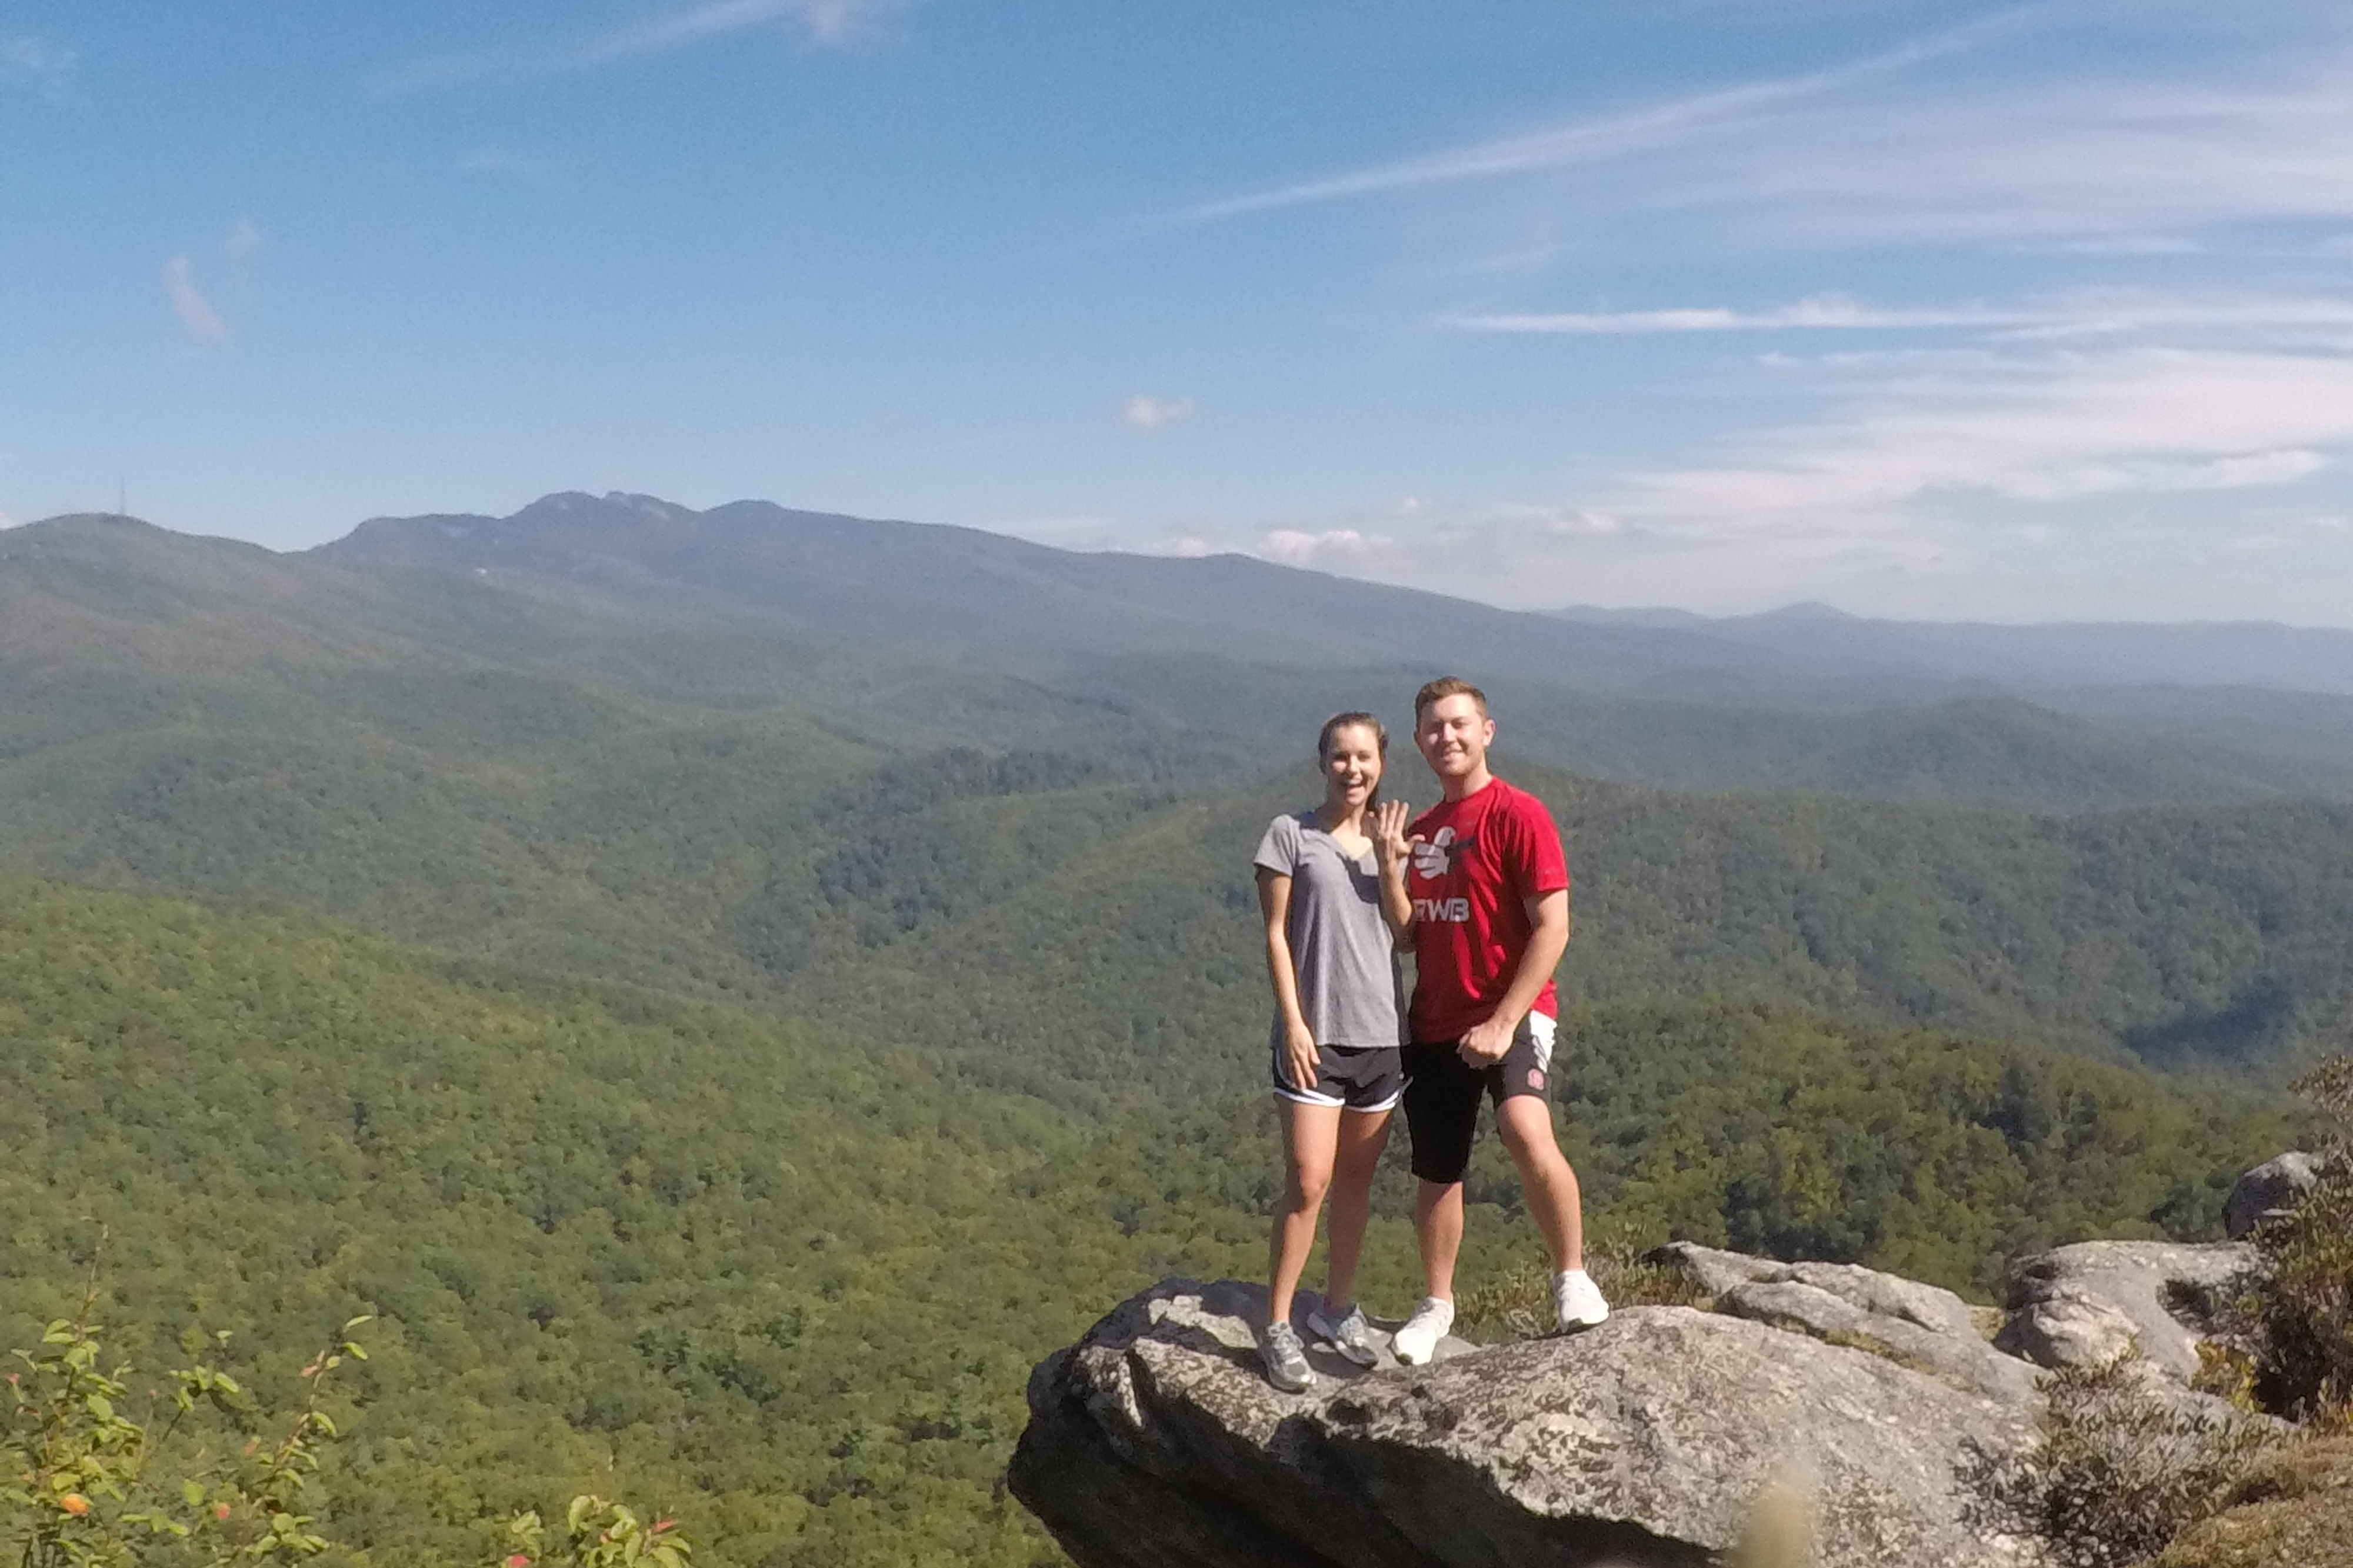 WATCH: American Idol Star Scotty McCreery Pops the Question Hiking in North Carolina